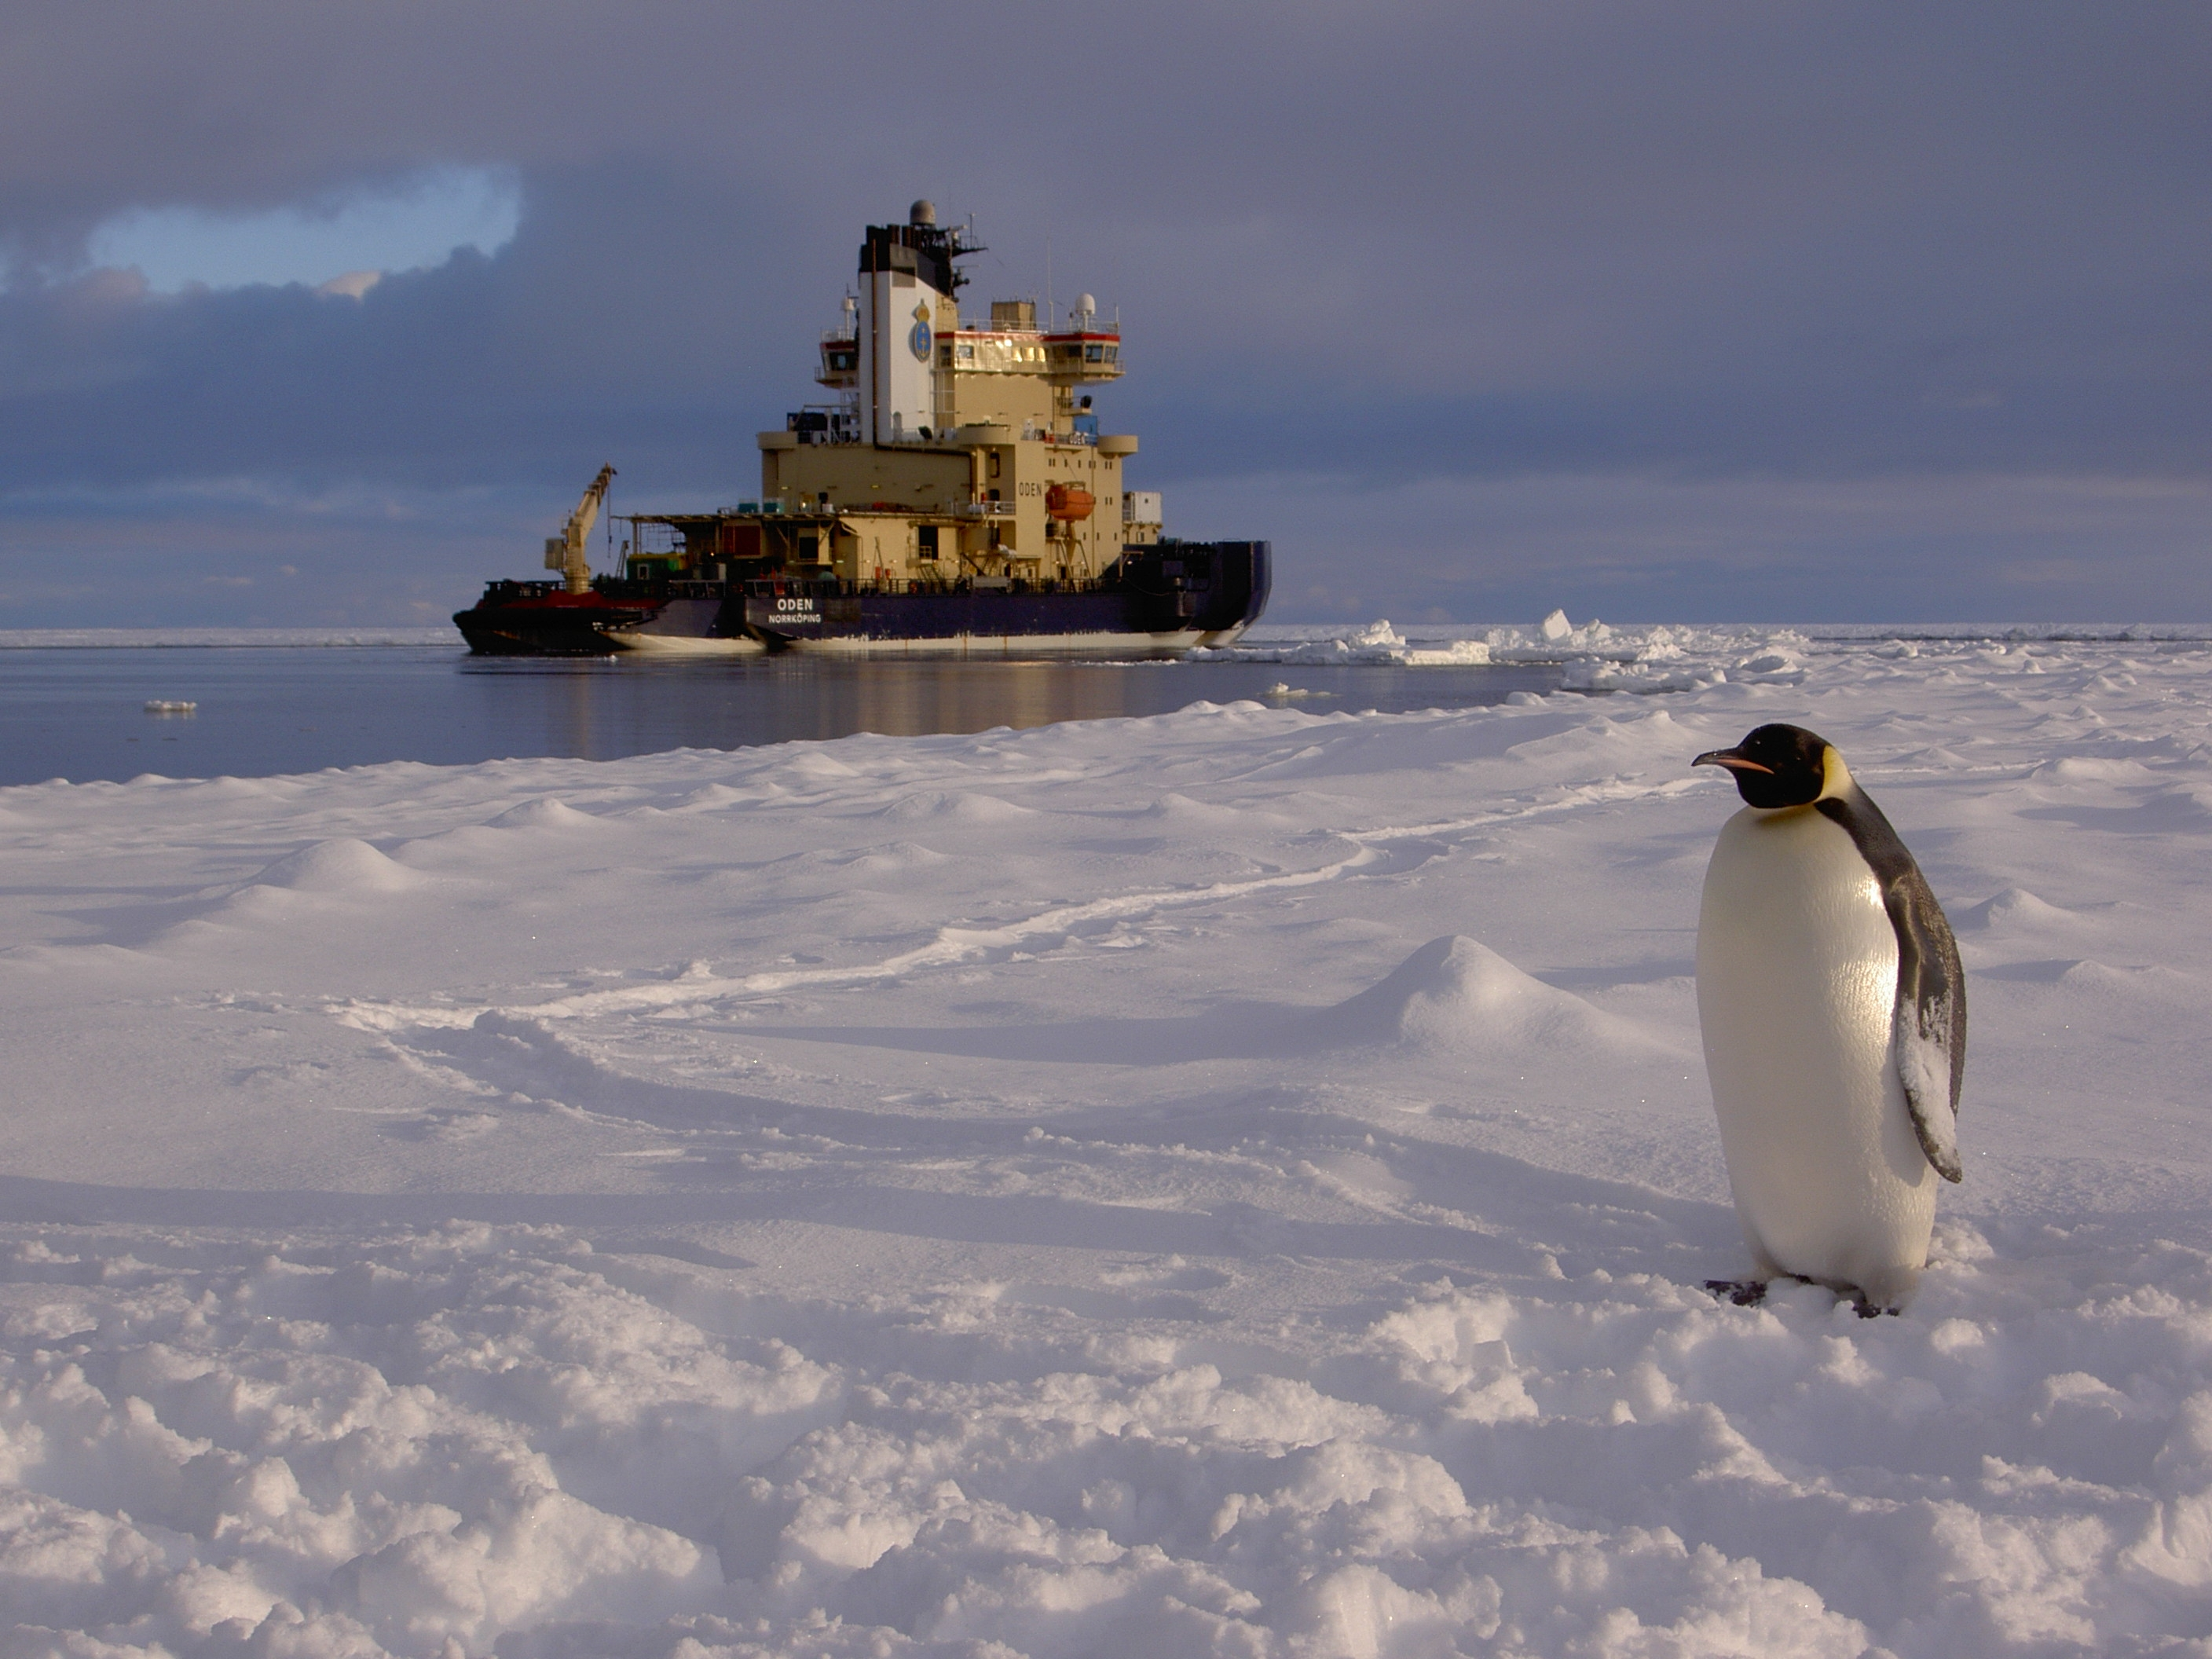 The Swedish icebreaker Oden off the coast of Antarctica, with an emperor penguin in the foreground. Photo by J. Wegelius.